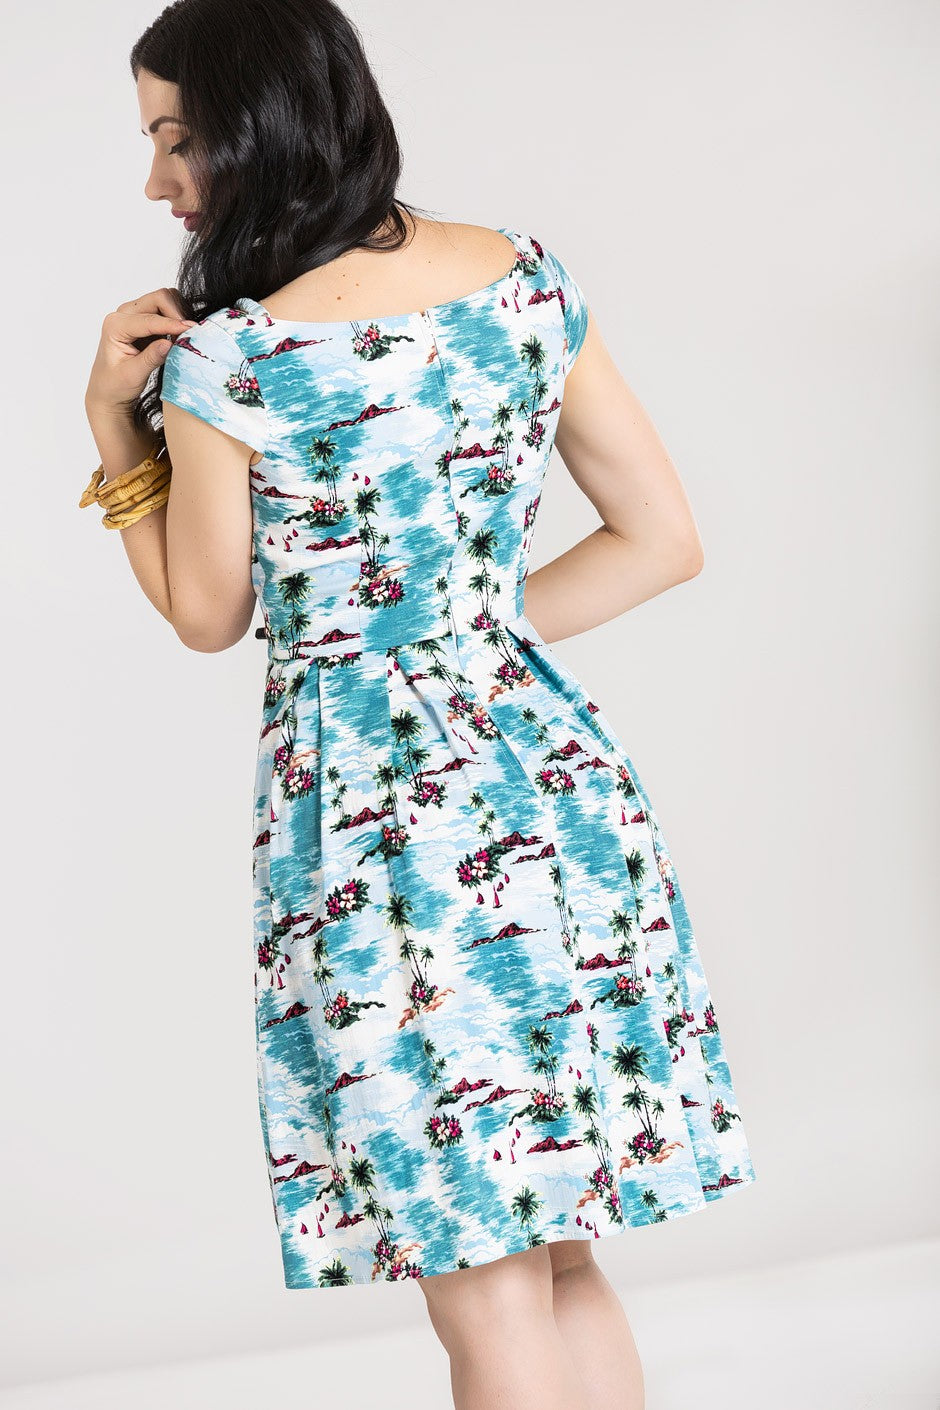 Grace Bay Dress by Hell Bunny